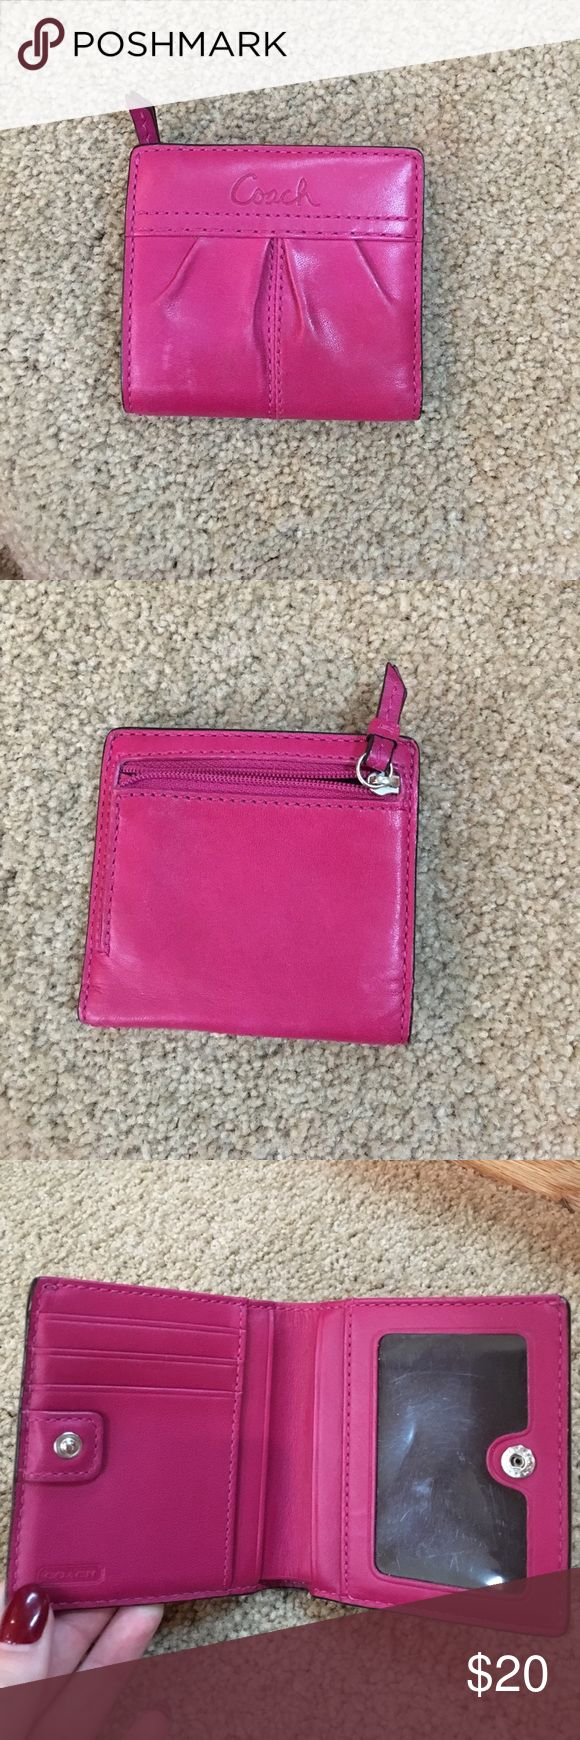 Coach Travel Wallet Mini Travel Wallet - Lightly worn - leather Coach Bags Wallets